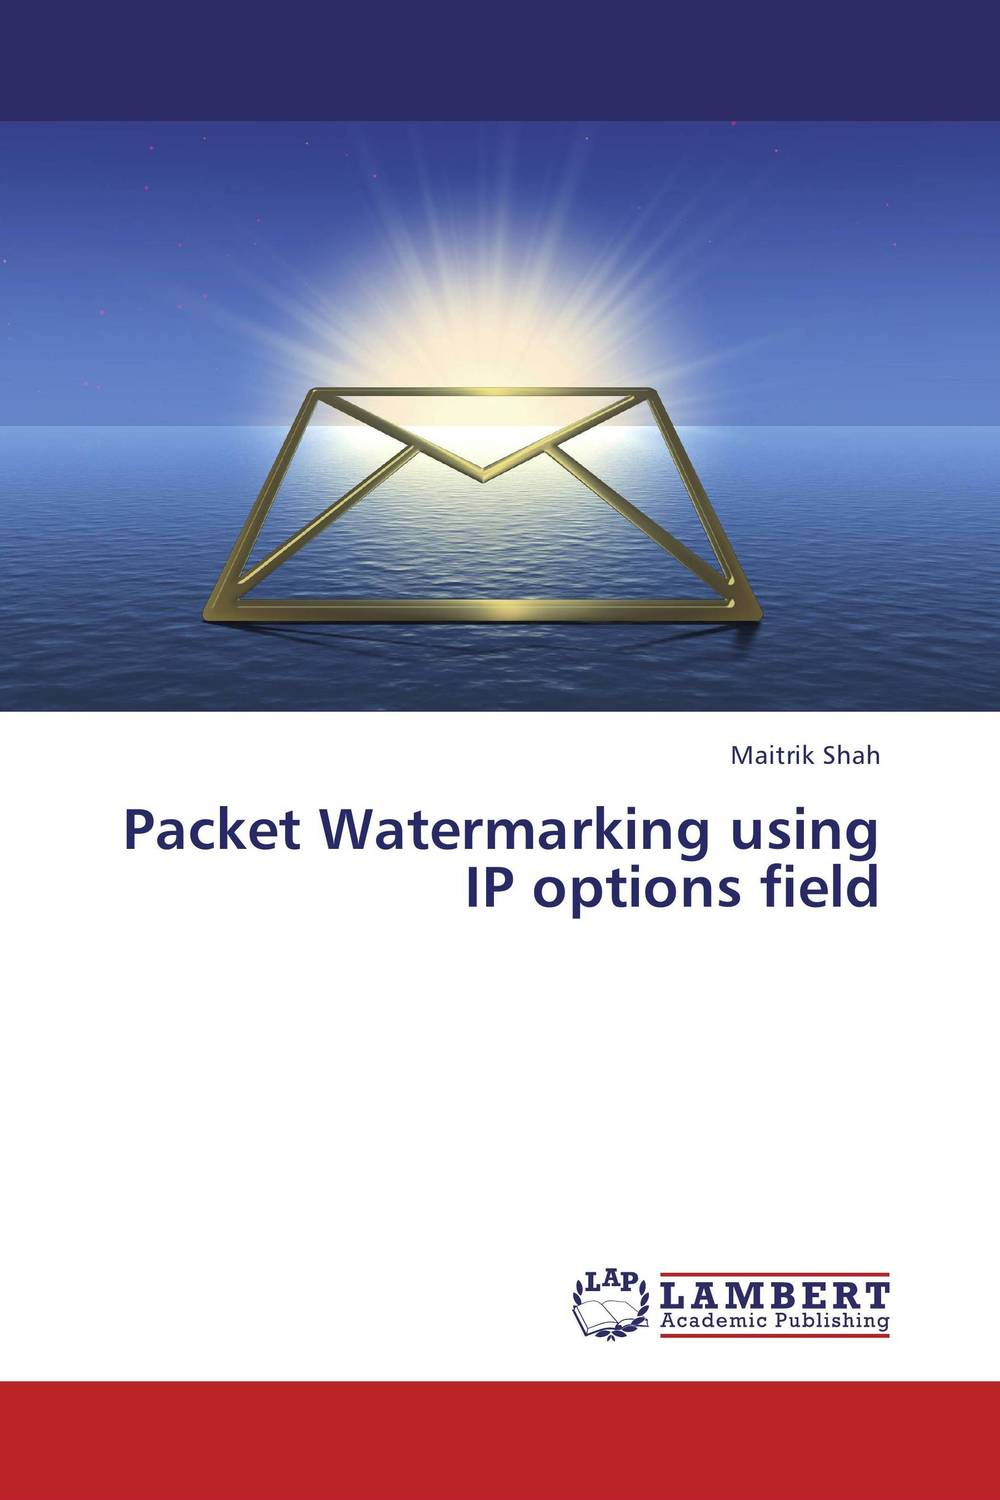 Packet Watermarking using IP options field packet watermarking using ip options field